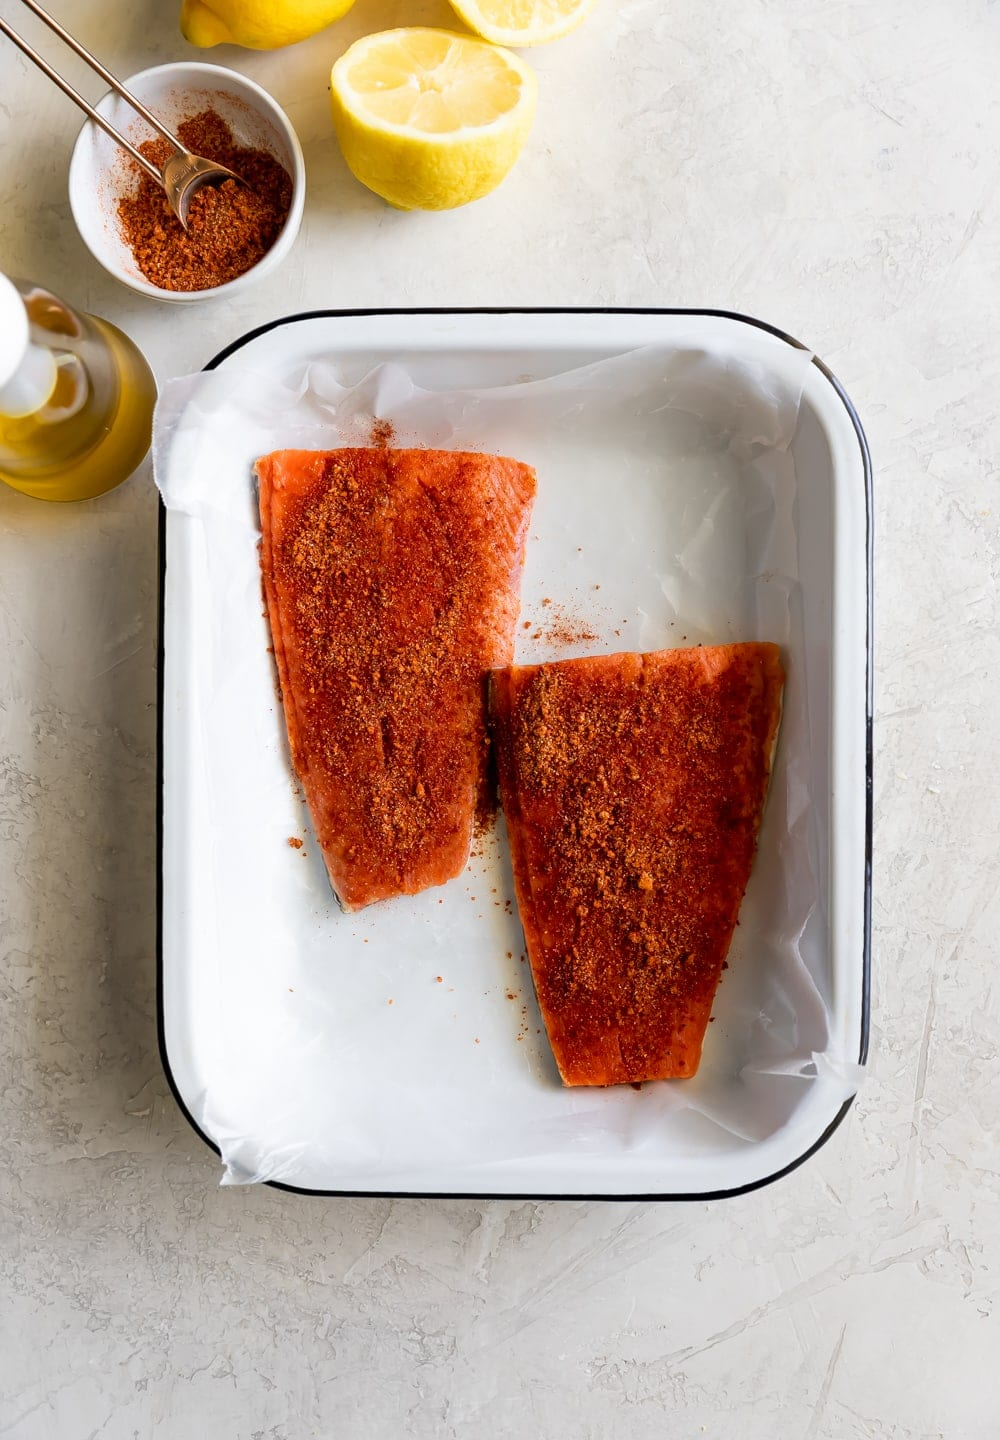 salmon on tray being seasoned with spices